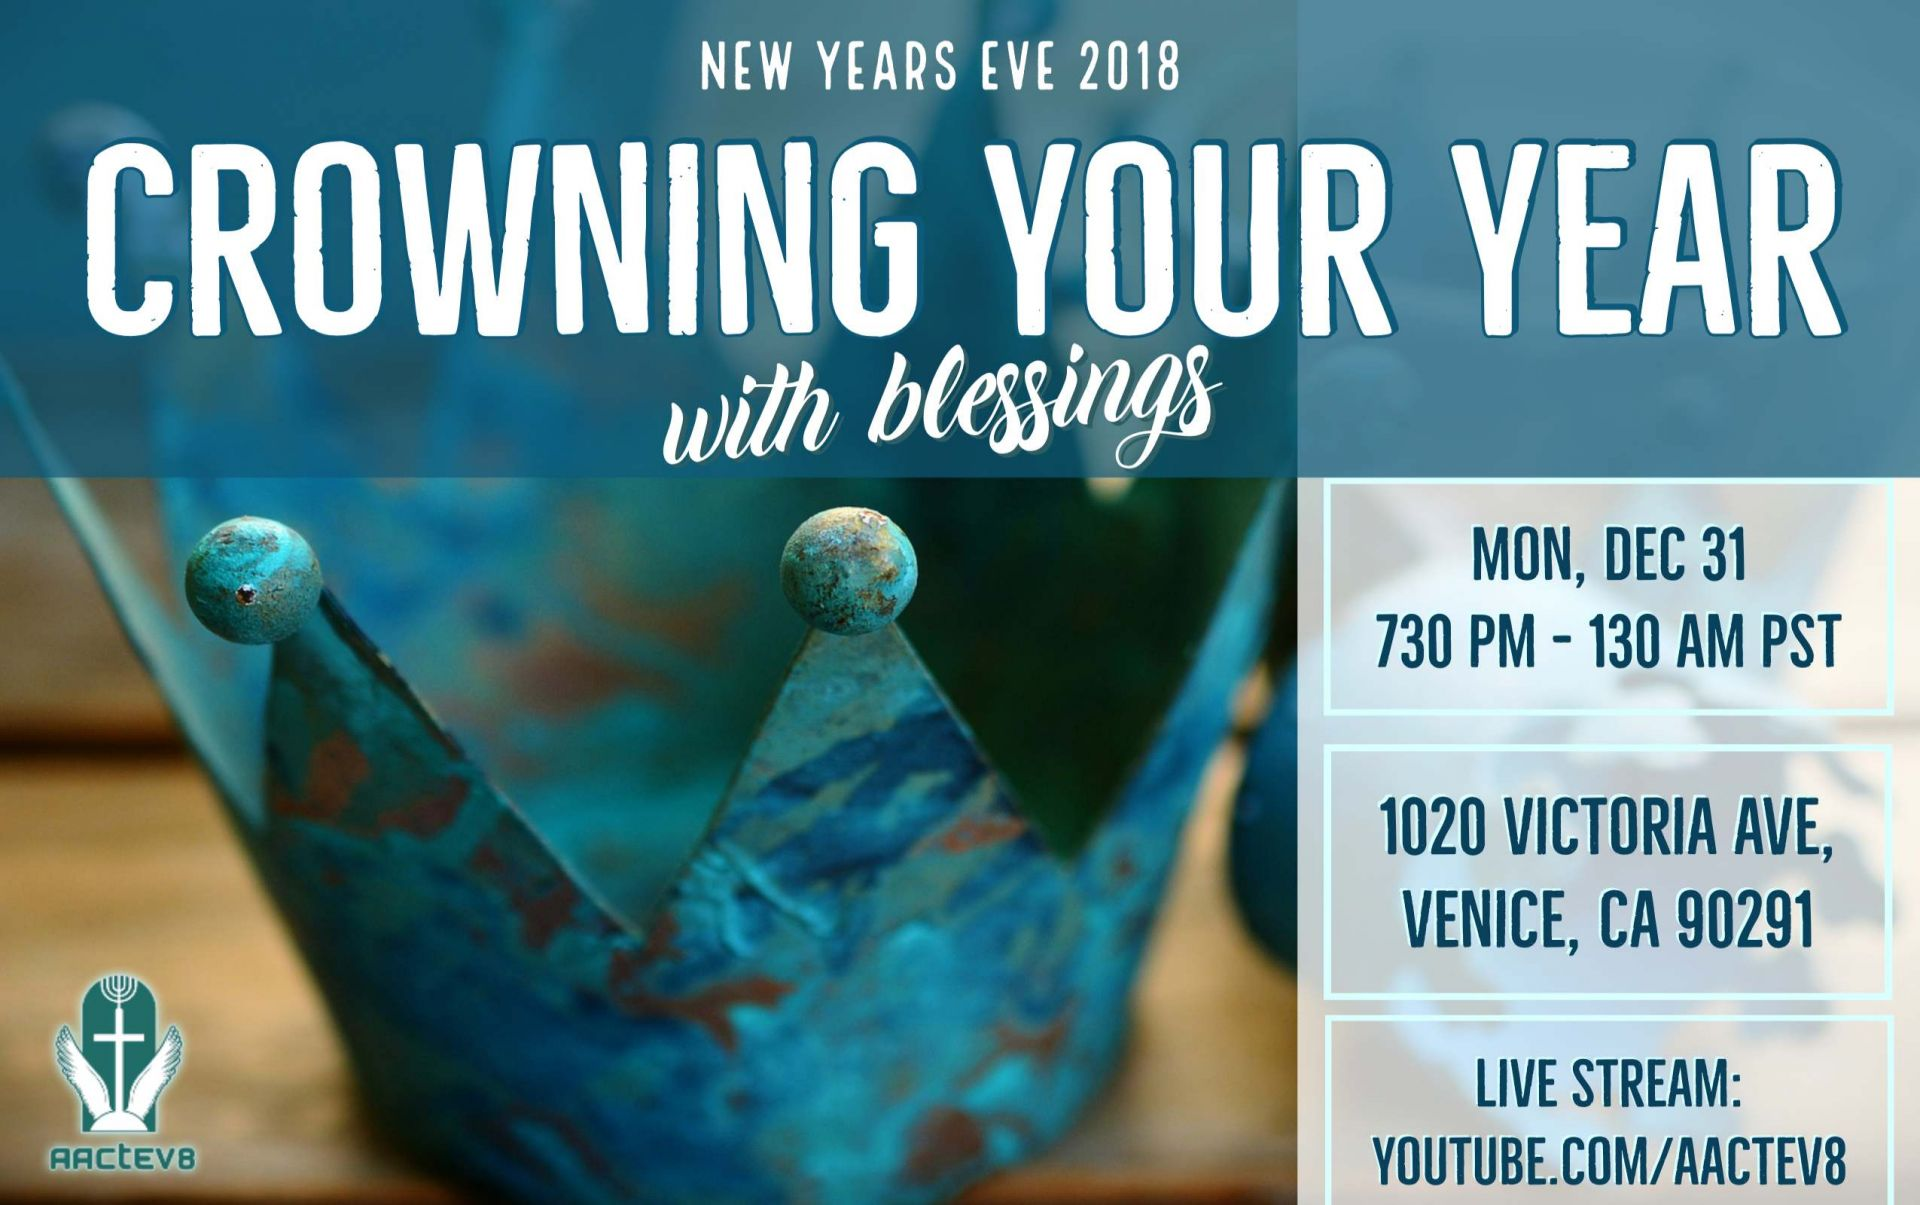 CROWNING YOUR YEAR WITH BLESSINGS<span>NEW YEARS EVE CELEBRATION IN VENICE, CA OR VIA LIVA STREAM</span>